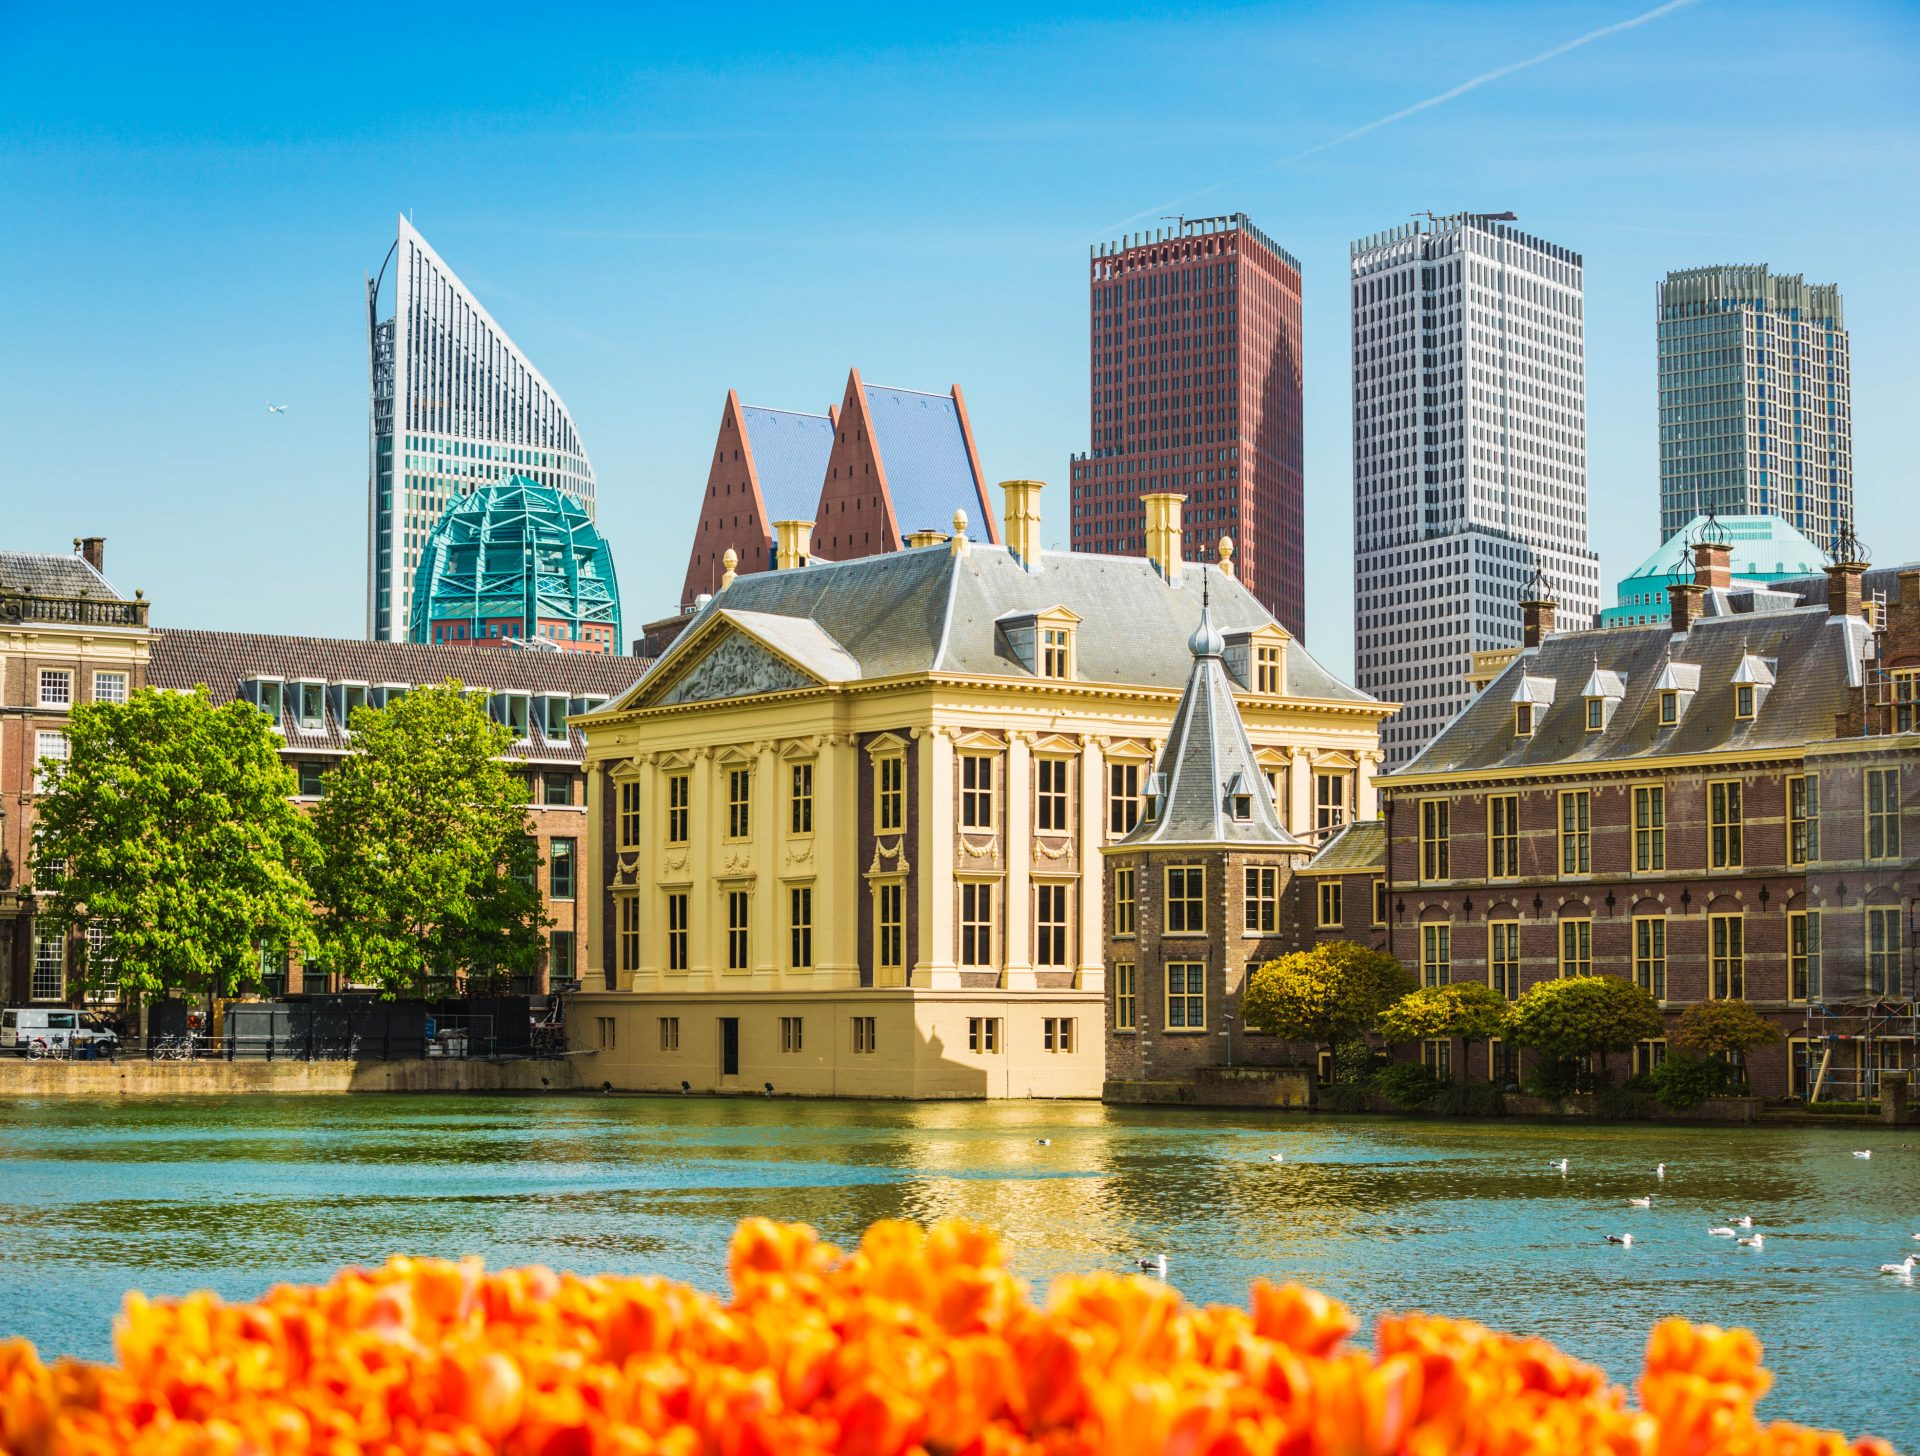 https://www.urlaubsguru.de/wp-content/uploads/2016/07/The-Hague-Netherlands-iStock_39199346_XLARGE-2-e1532615061757.jpg